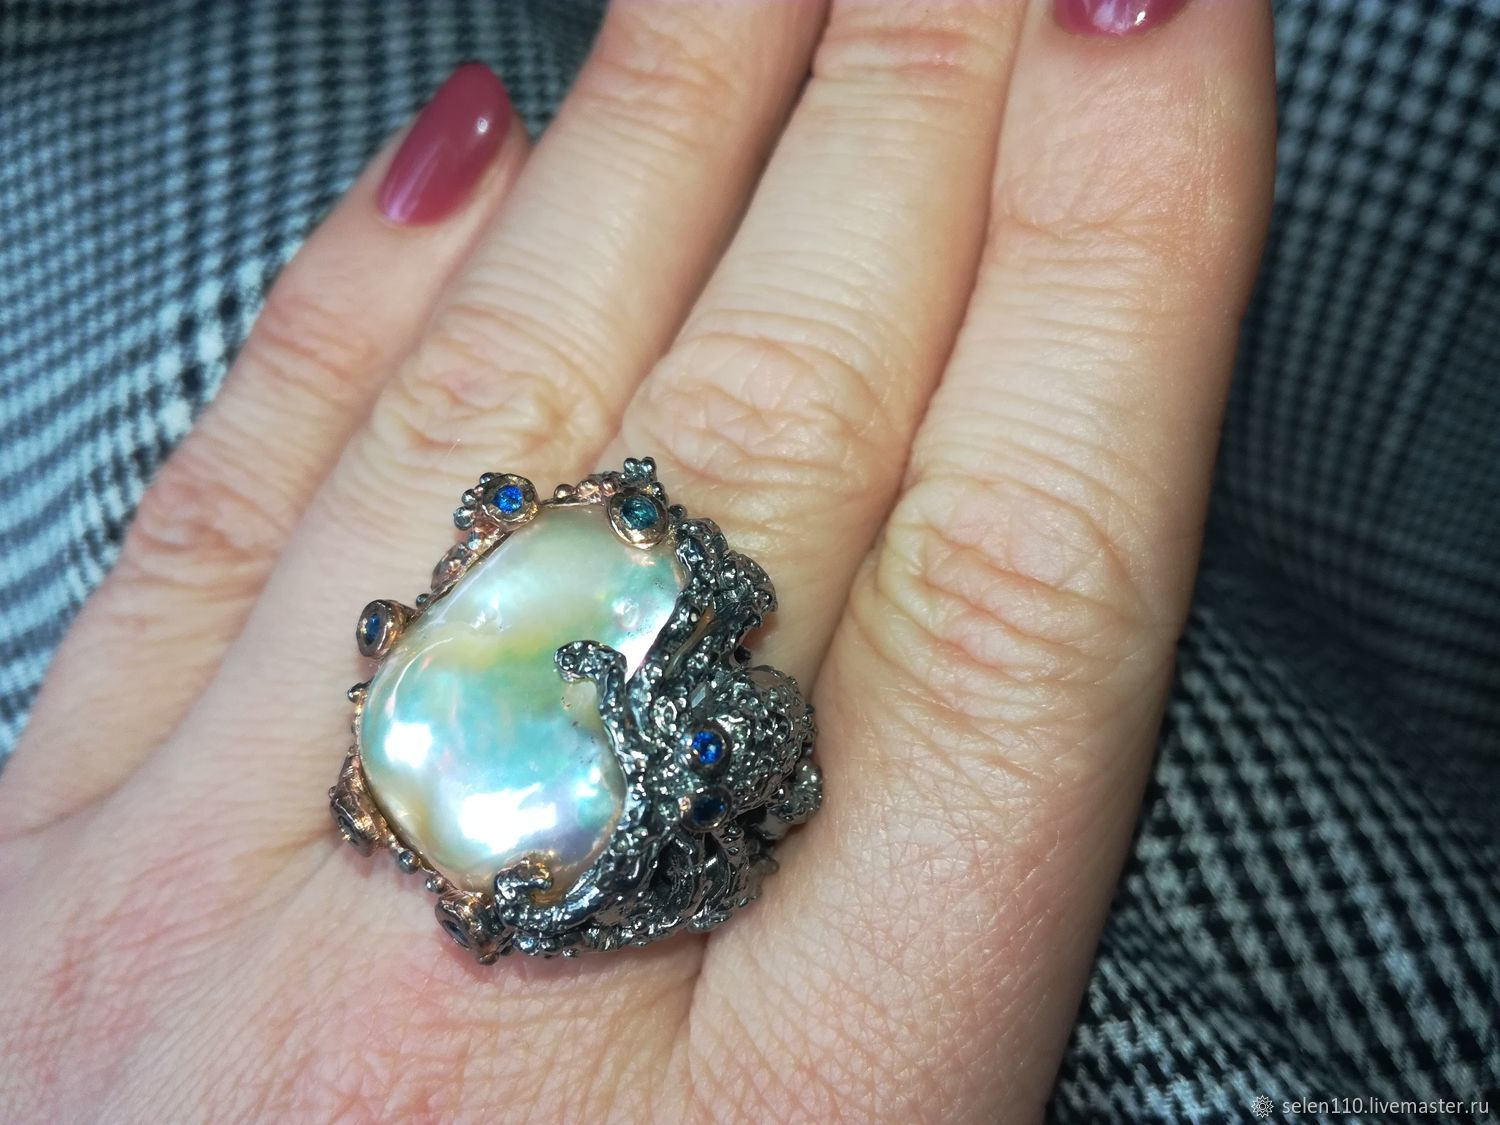 Ring 'Foam Cove' with a Baroque pearl and sapphires, Rings, Voronezh,  Фото №1